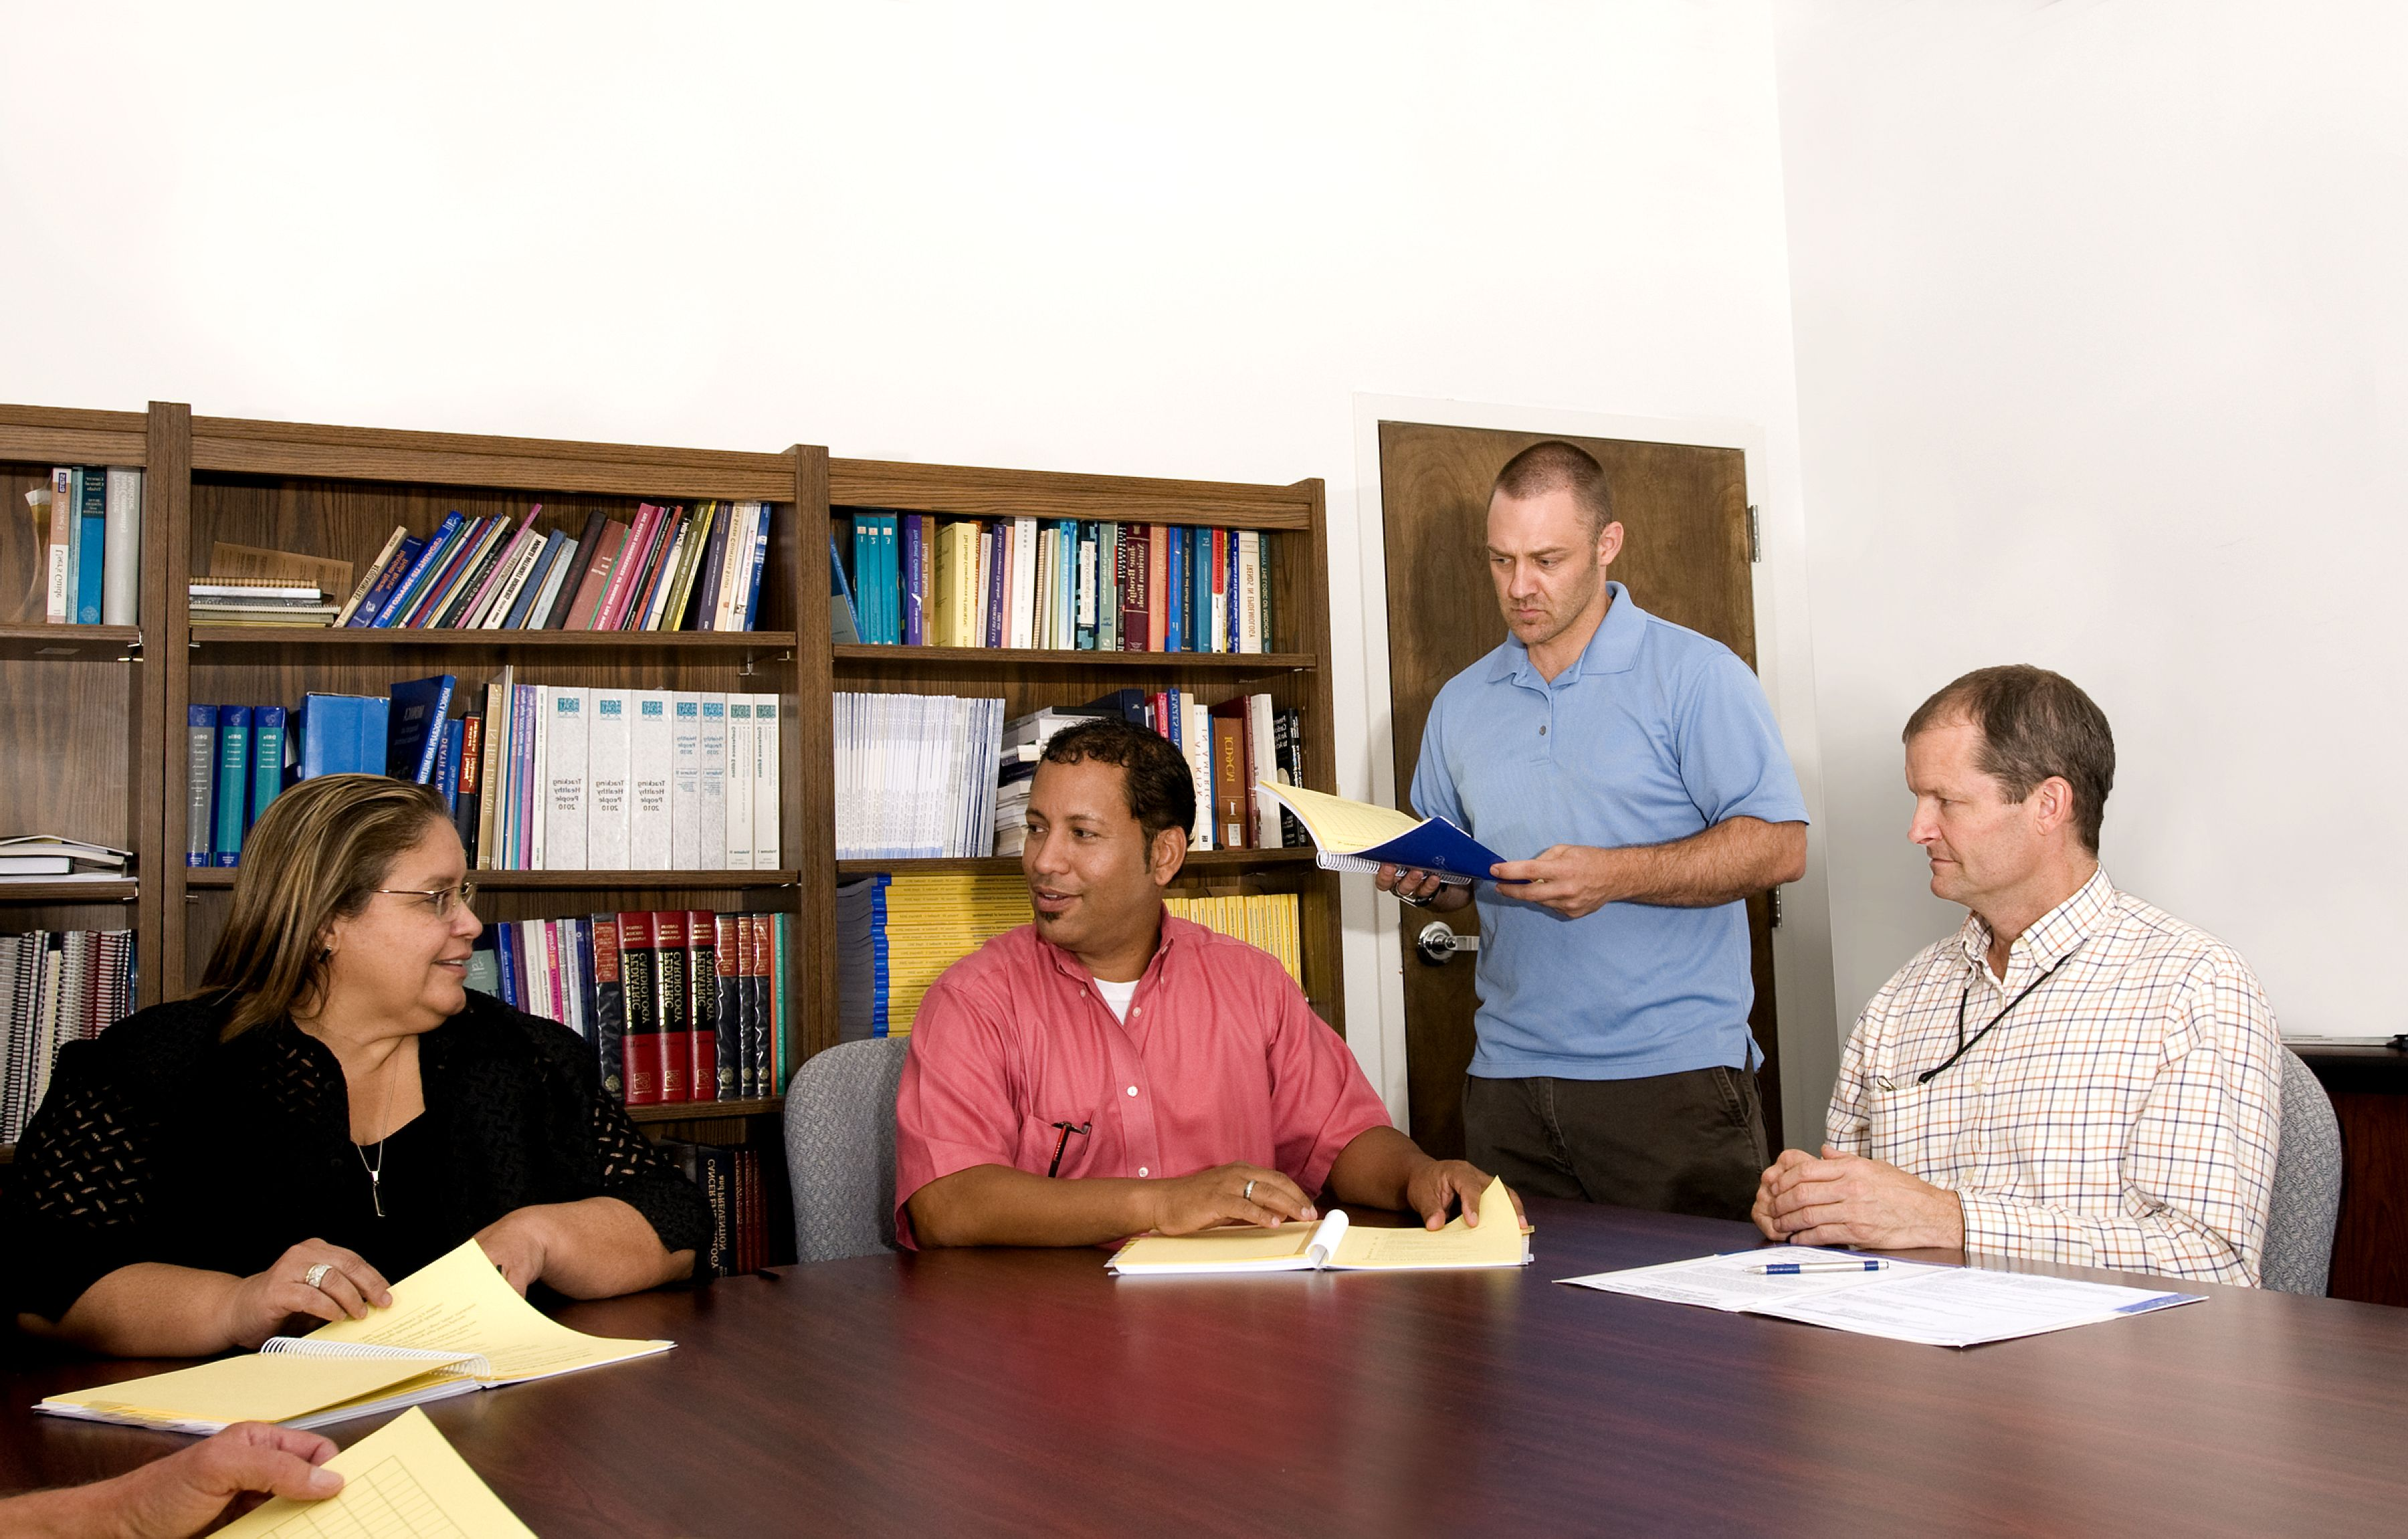 Free Picture Workers Sitting Meeting Table Discussing